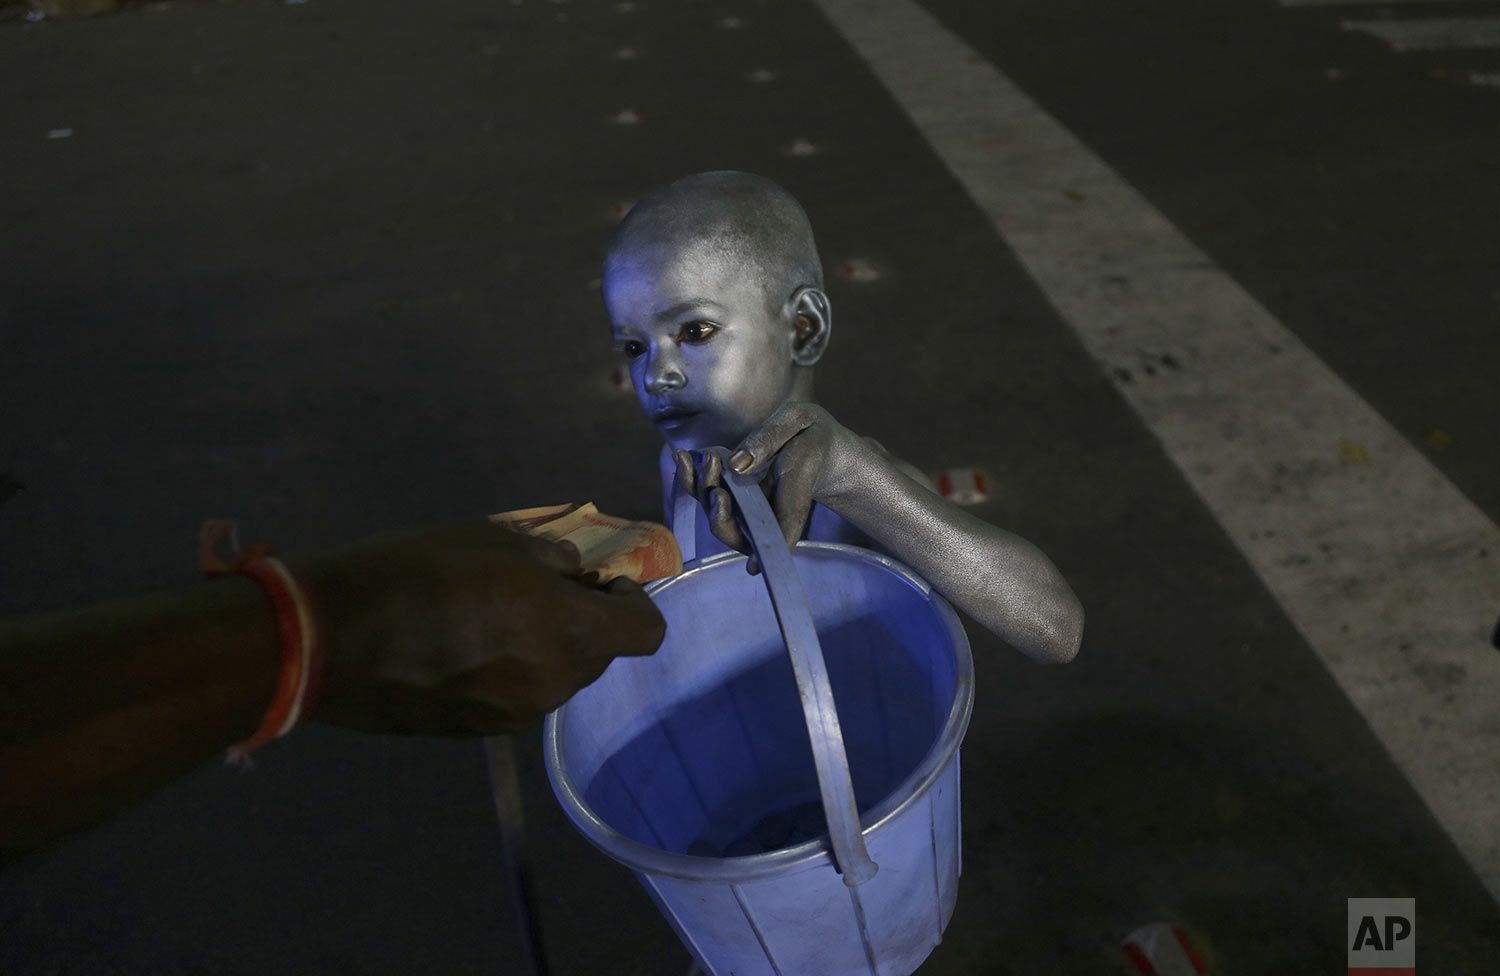 A young boy with his body painted and dressed as Mahatma Gandhi seek alms at a traffic intersection in Hyderabad, India, Tuesday, Sept.10, 2019.  (AP Photo/Mahesh Kumar A.)